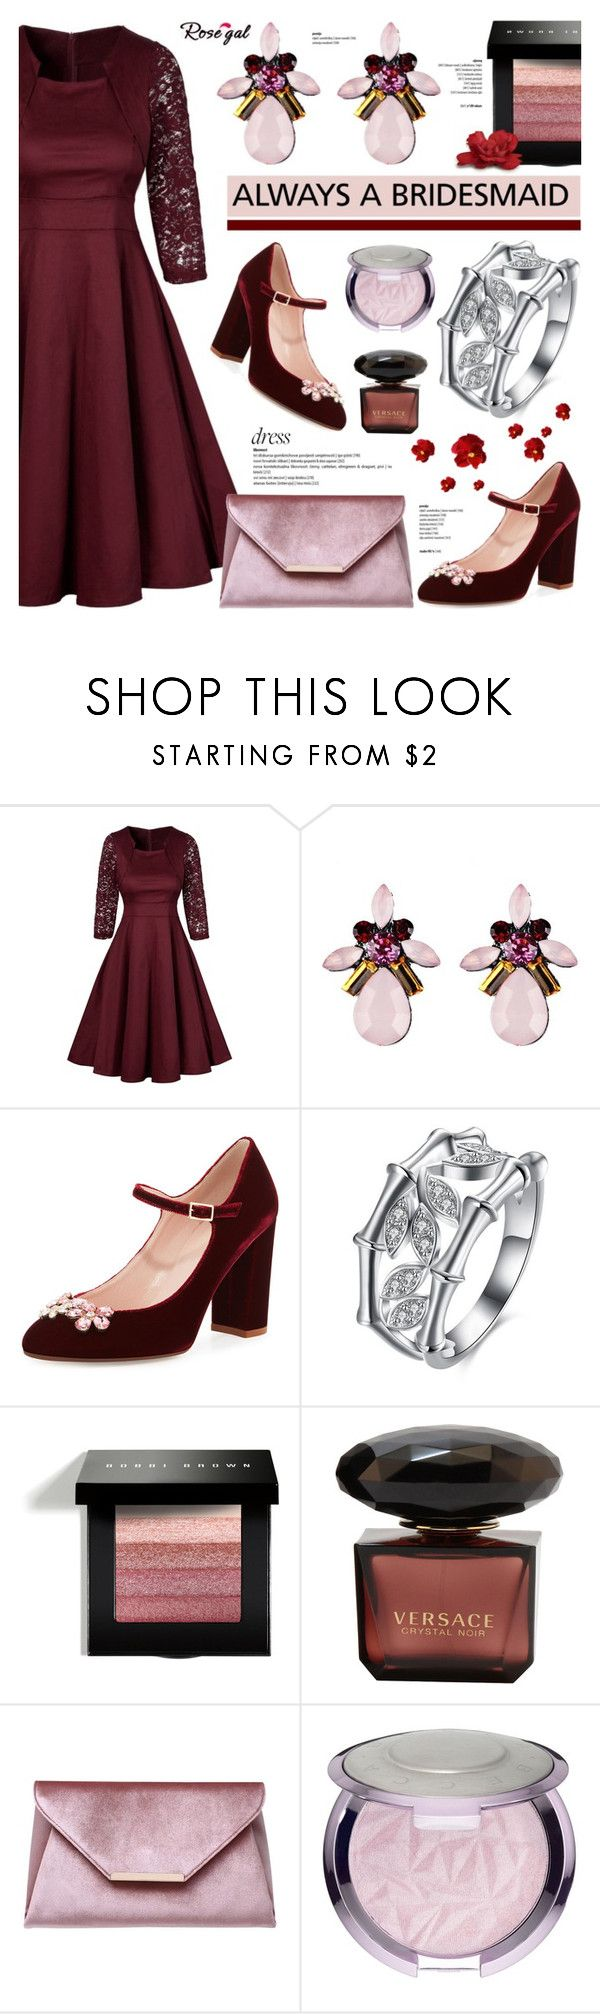 """Rosegal 43"" by anyasdesigns ❤ liked on Polyvore featuring Kate Spade, Bobbi Brown Cosmetics, Carvela and vintage"